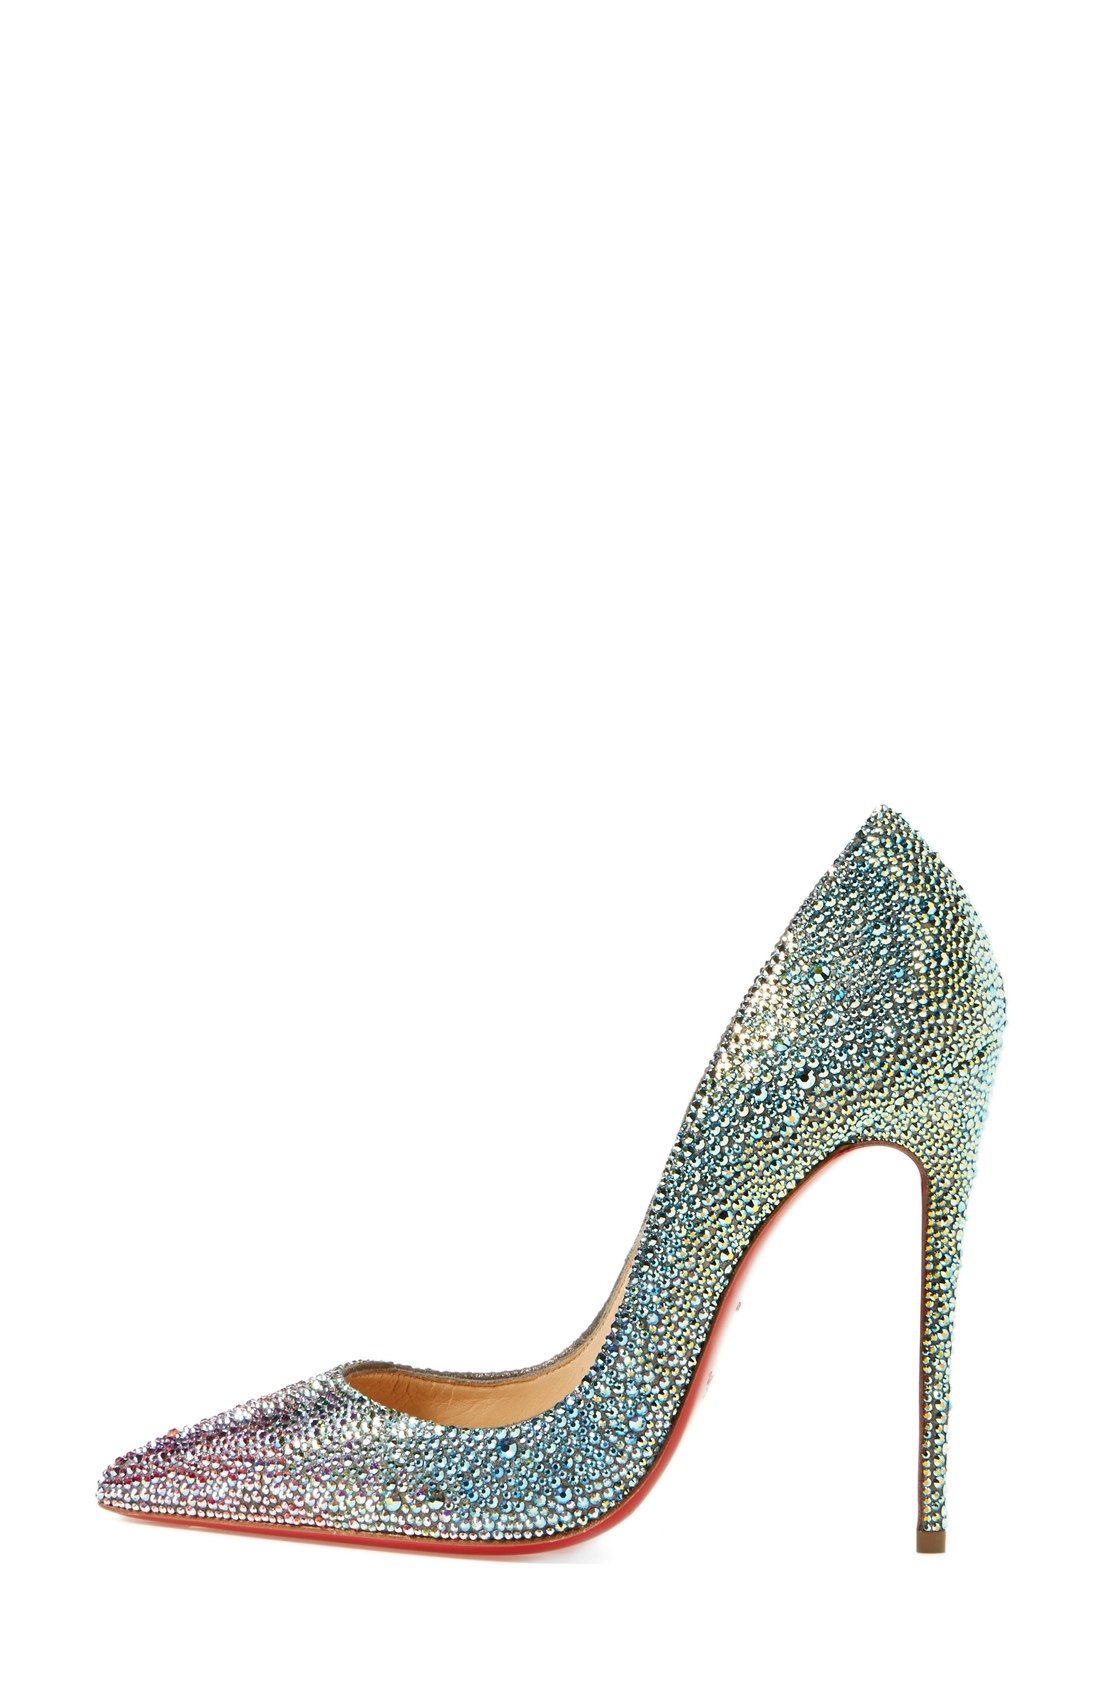 864890e2213eb Love how glittery these Christian Louboutin 'So Kate' pumps are ...